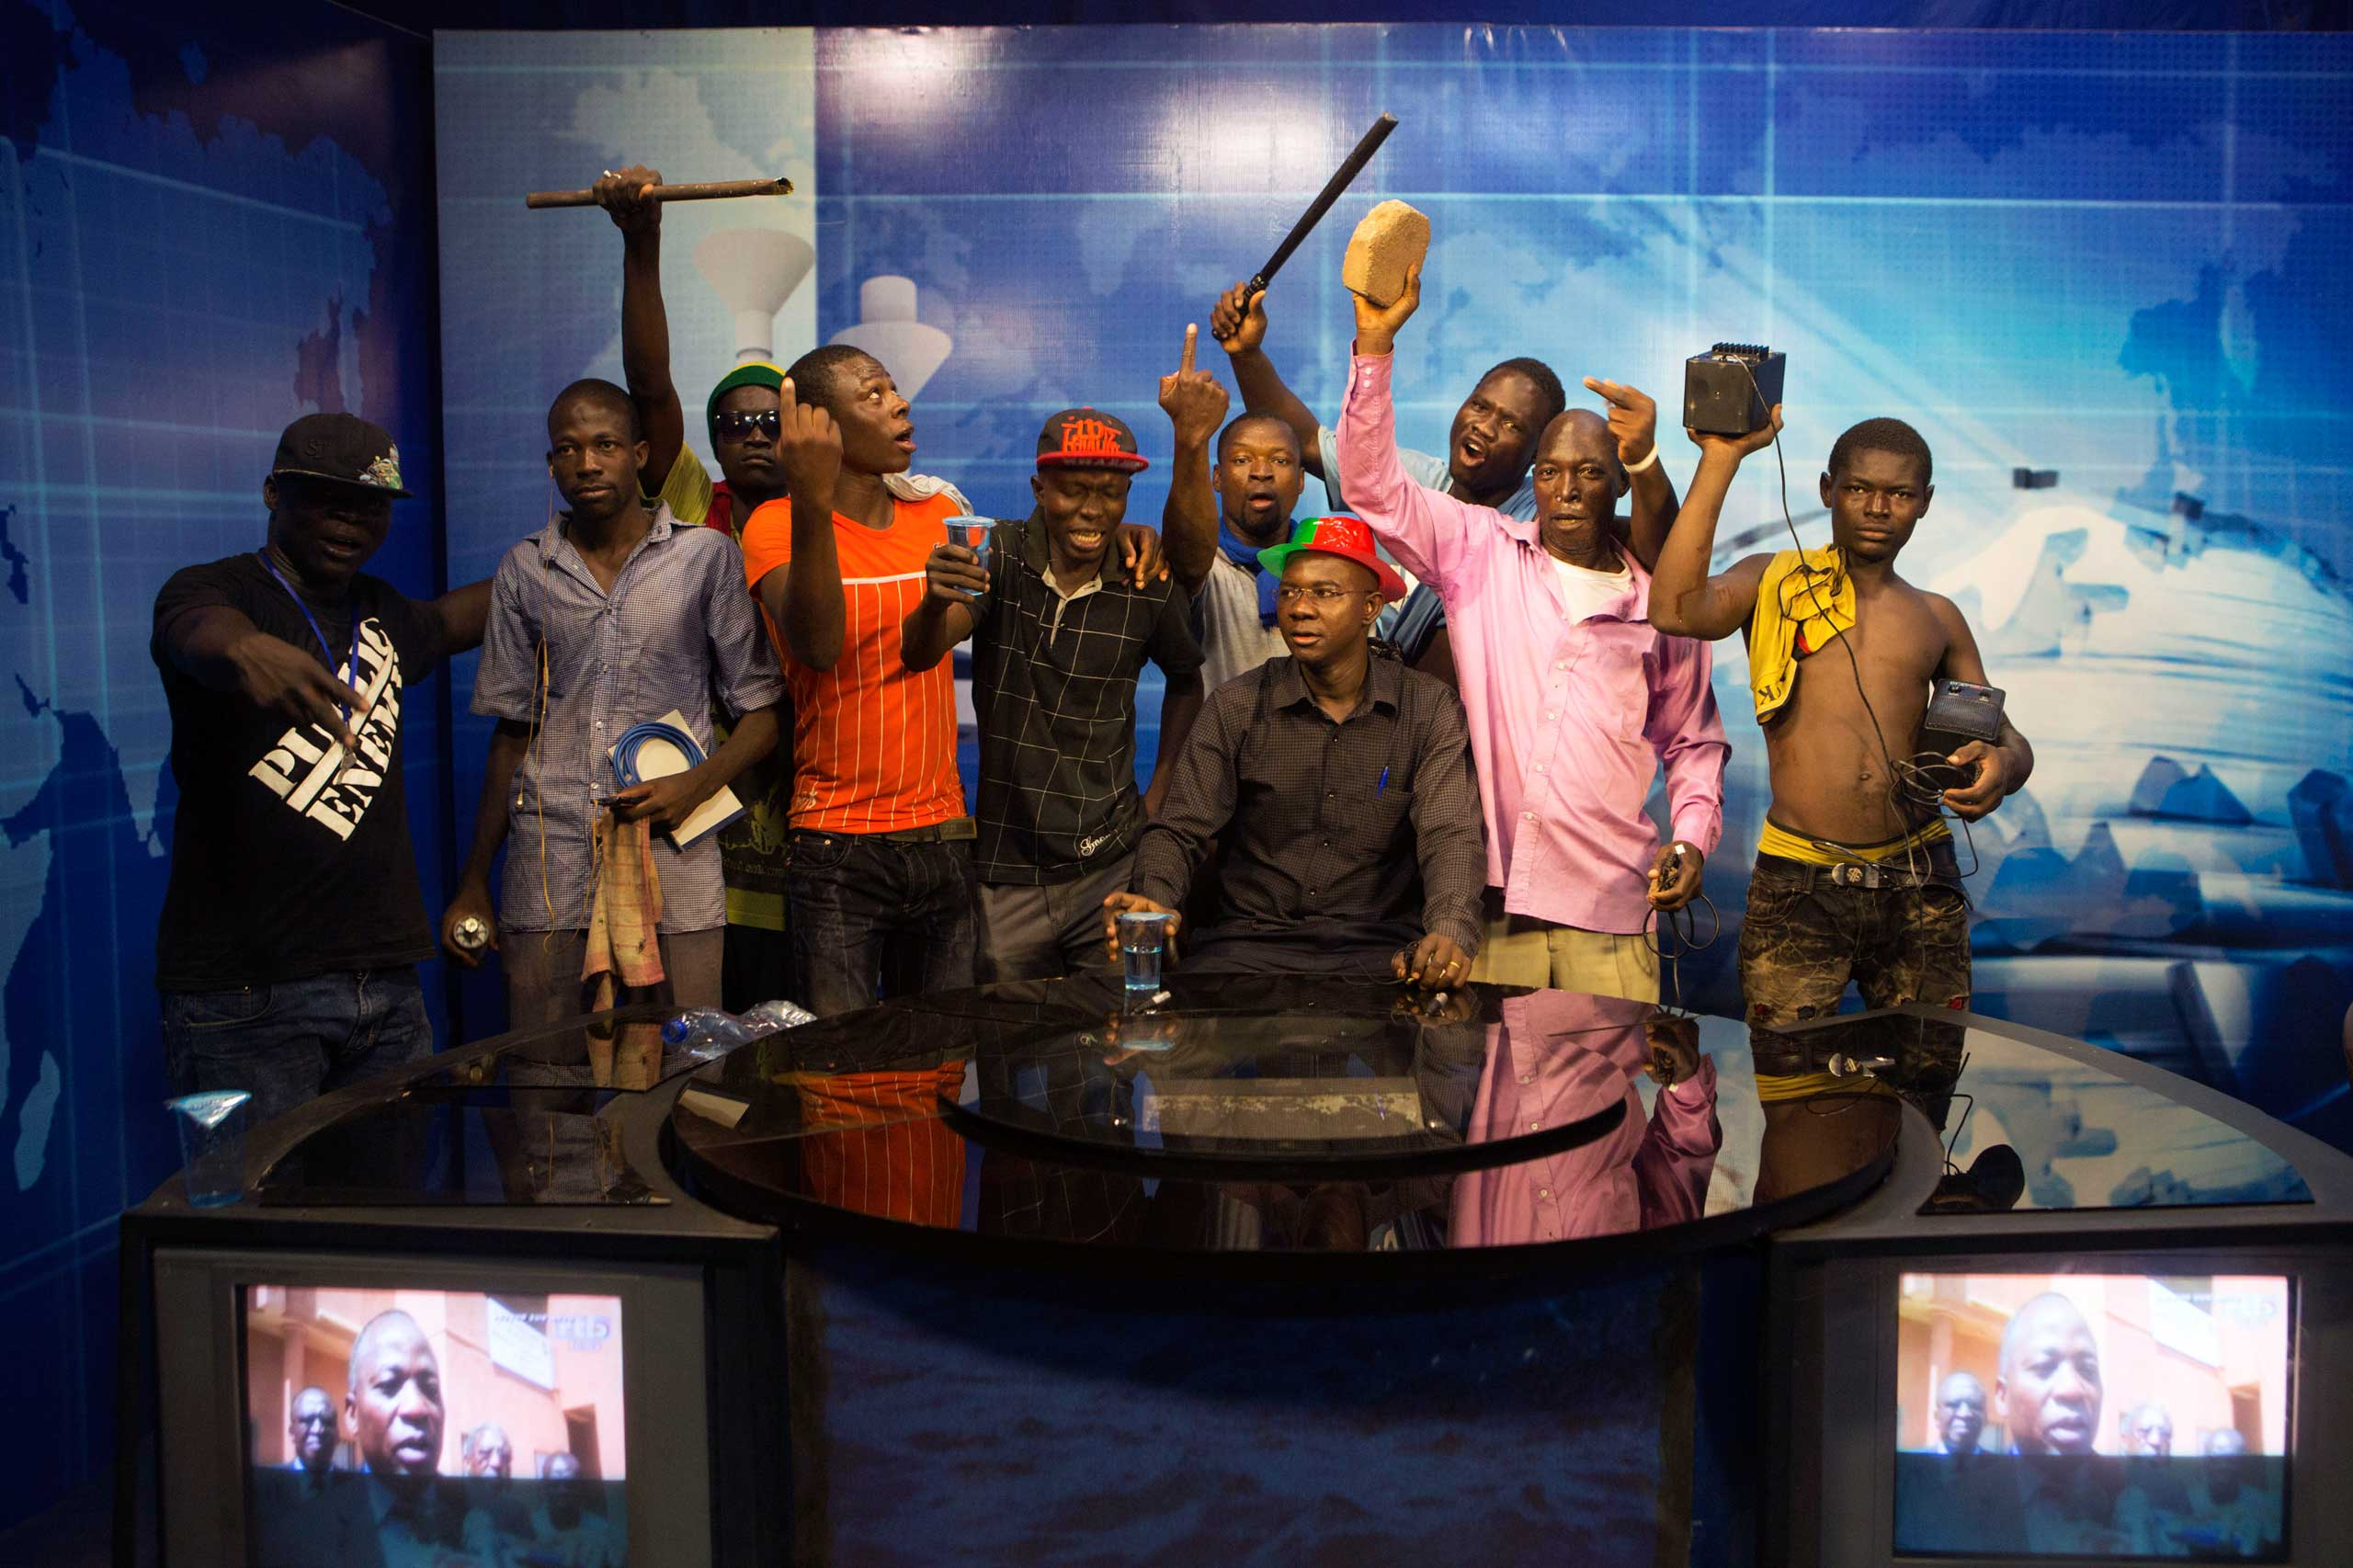 NBC News: The Year in Pictures: 2014Anti-government protesters take over the state TV podium in Ouagadougou, capital of Burkina Faso, Oct. 30, 2014.